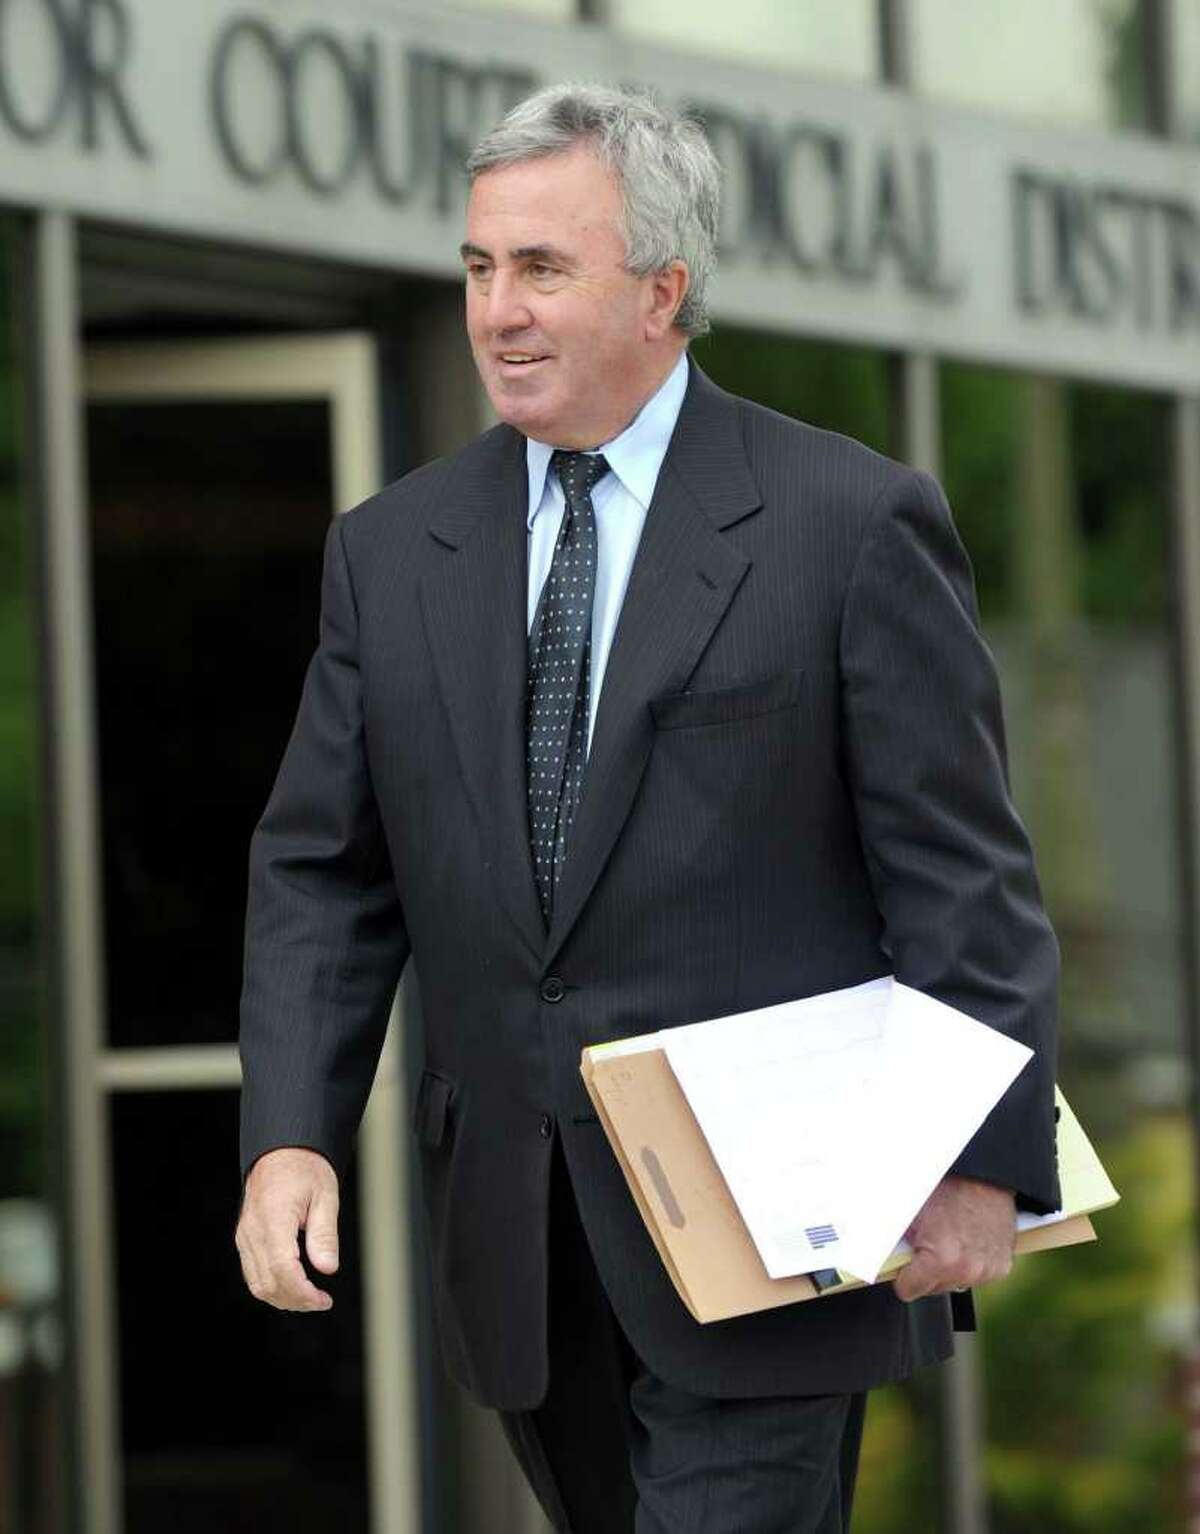 """Michael """"Mickey"""" Sherman, a Greenwich-based criminal defense lawyer leaves Danbury Superior Courtin on June 11, 2010. Sherman faces up to two years in prison as a result of his guilty pleas last summer to two misdemeanor charges of failing to pay $420,710 in owed income taxes for the years 2001 and 2002. He already repaid the taxes owed."""